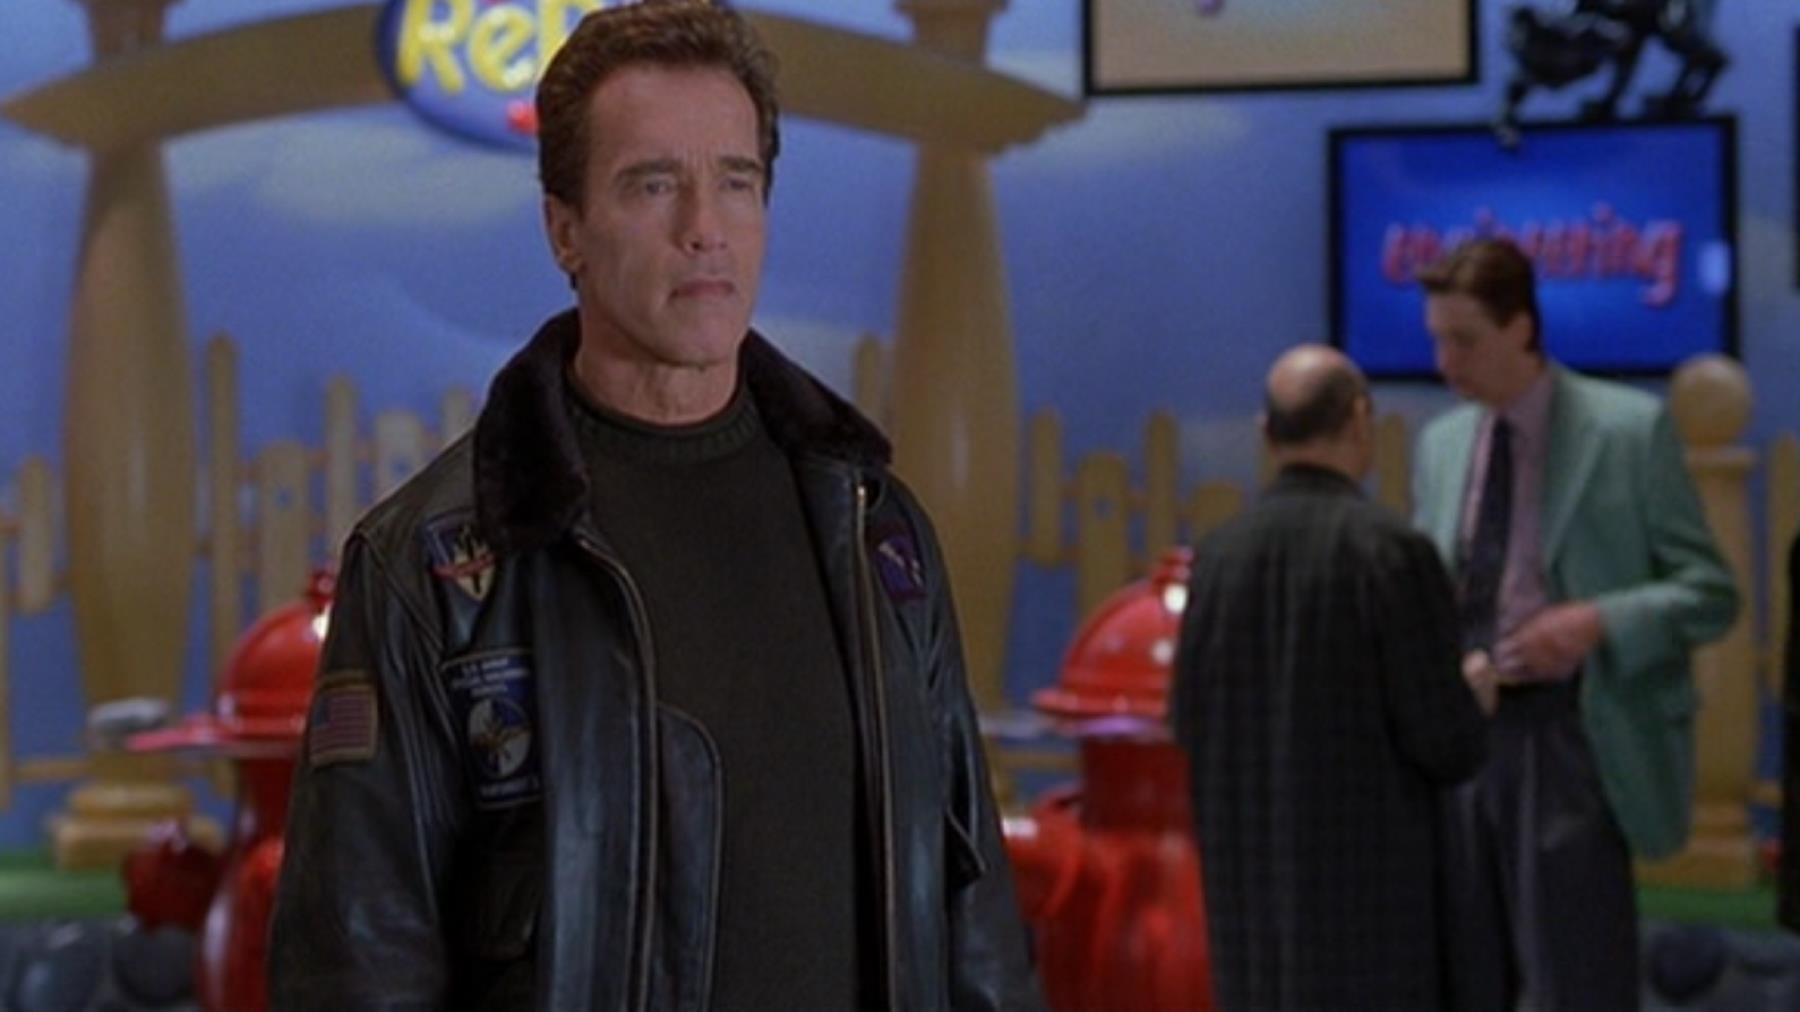 THE 6TH DAY (2000) - Adam Gibson's (Arnold Schwarzenegger) Leather Jacket - Image 13 of 15